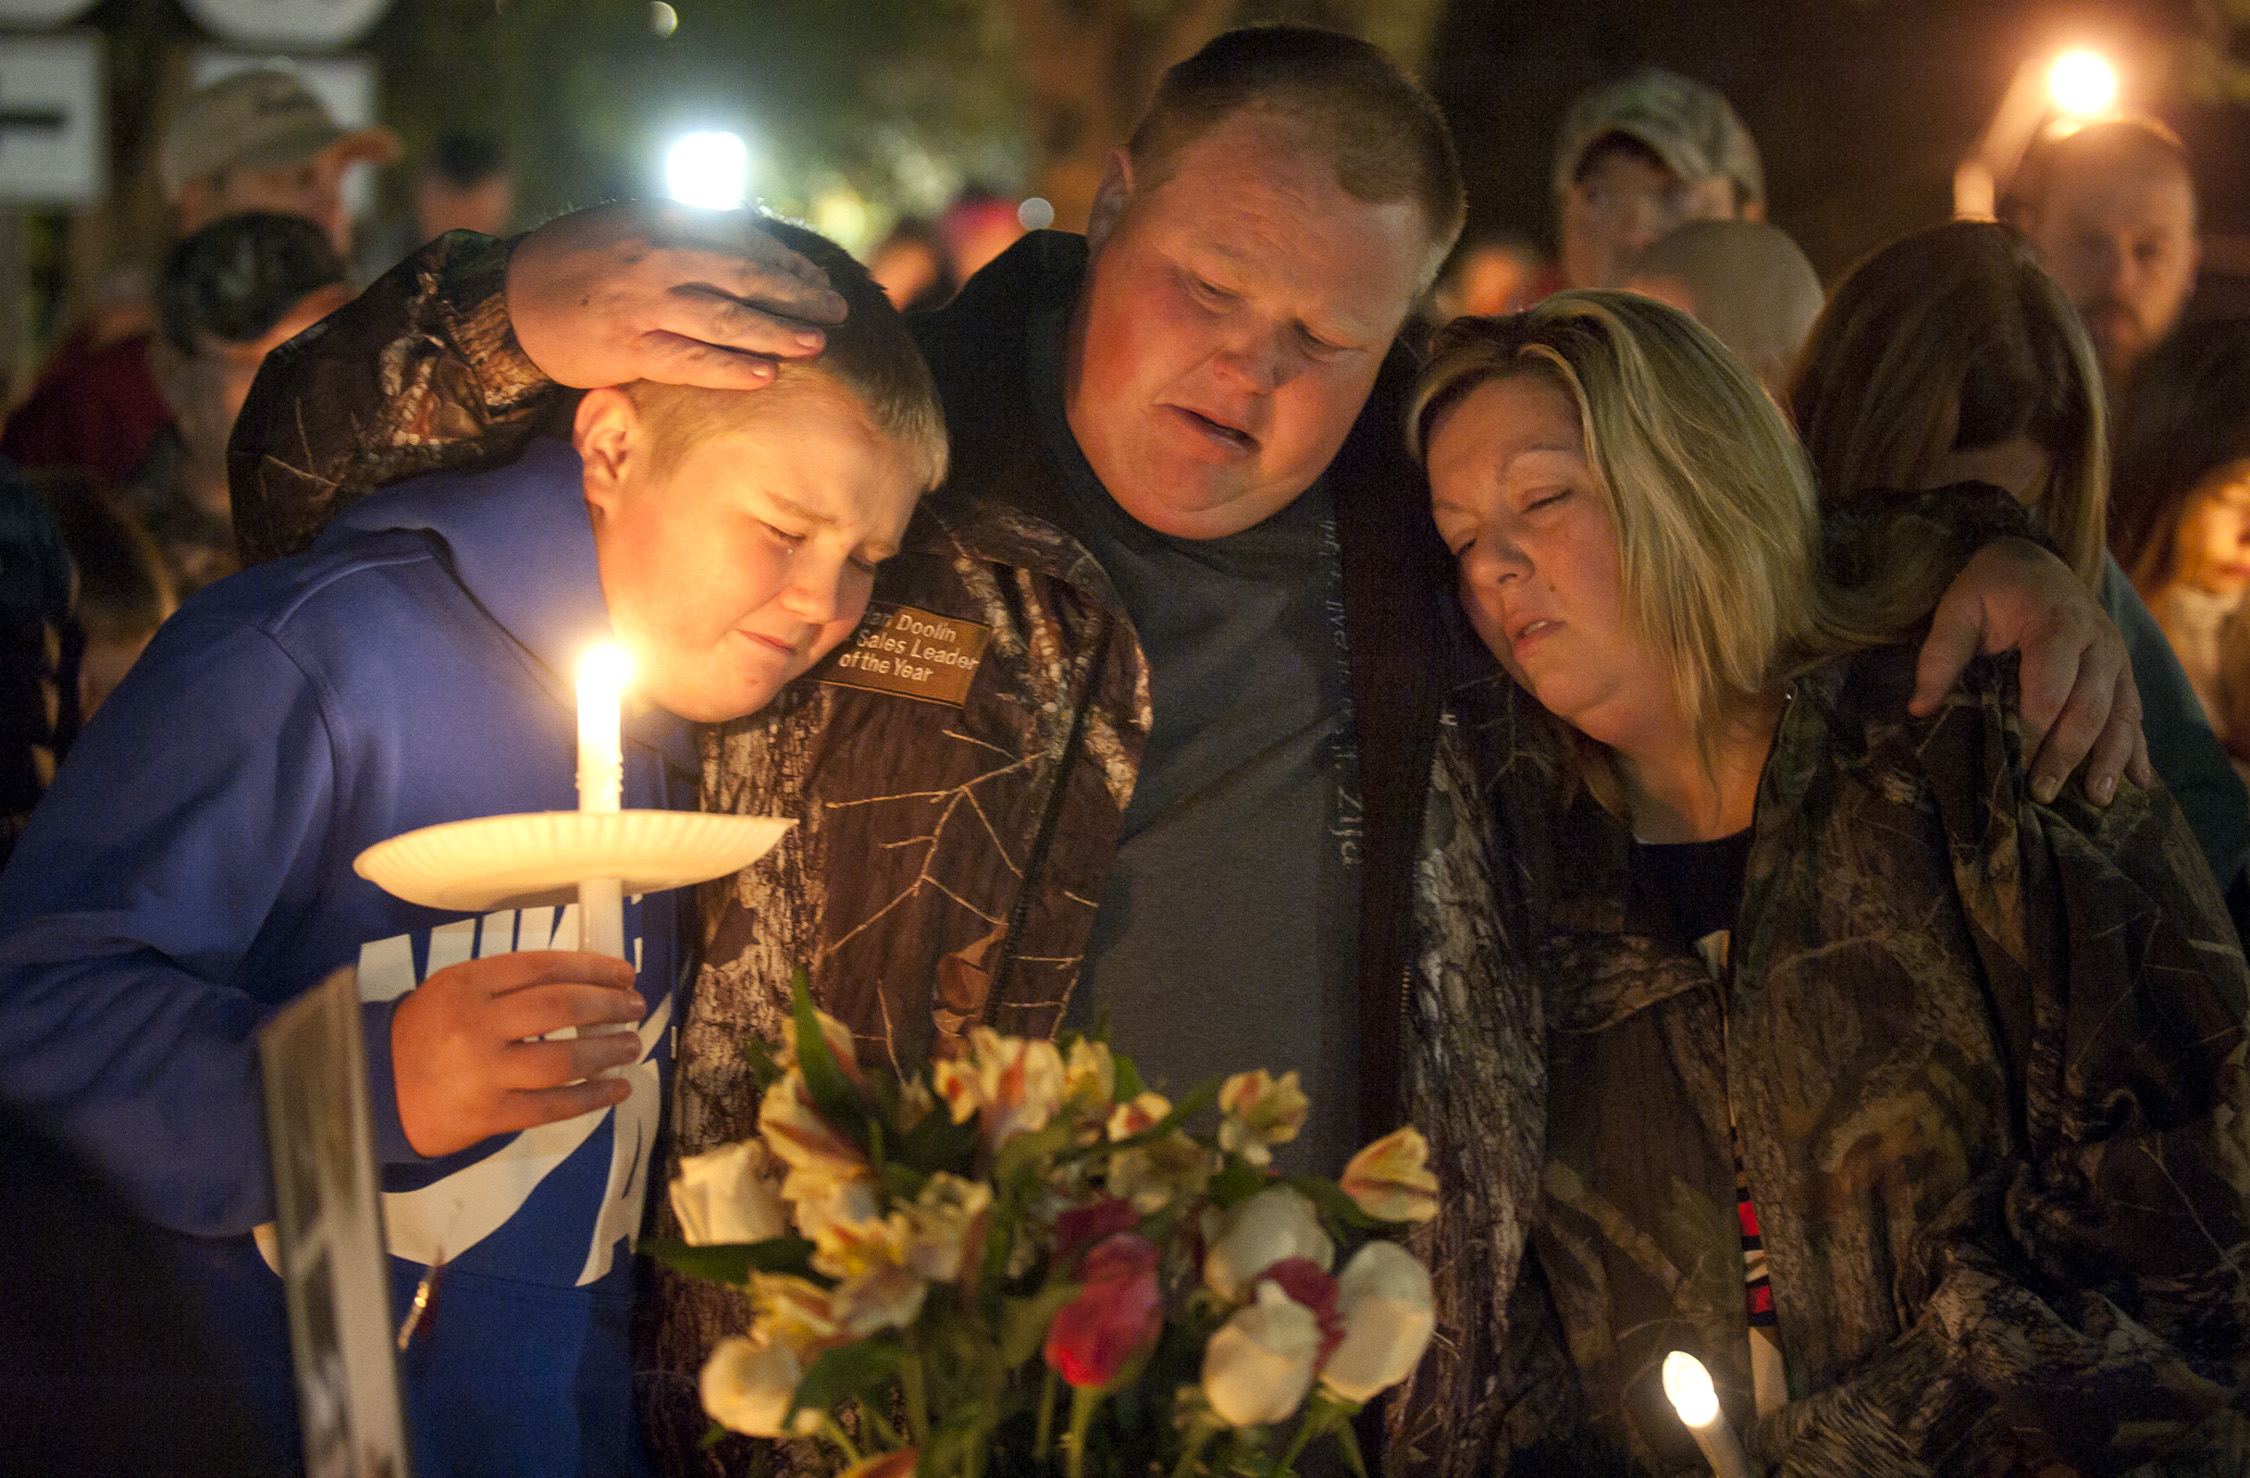 Gabriella Doolin's brother Alec, father Brian and mother Amy, comfort each other during a vigil for her in Scottsville, Kentucky on Nov. 15, 2015.